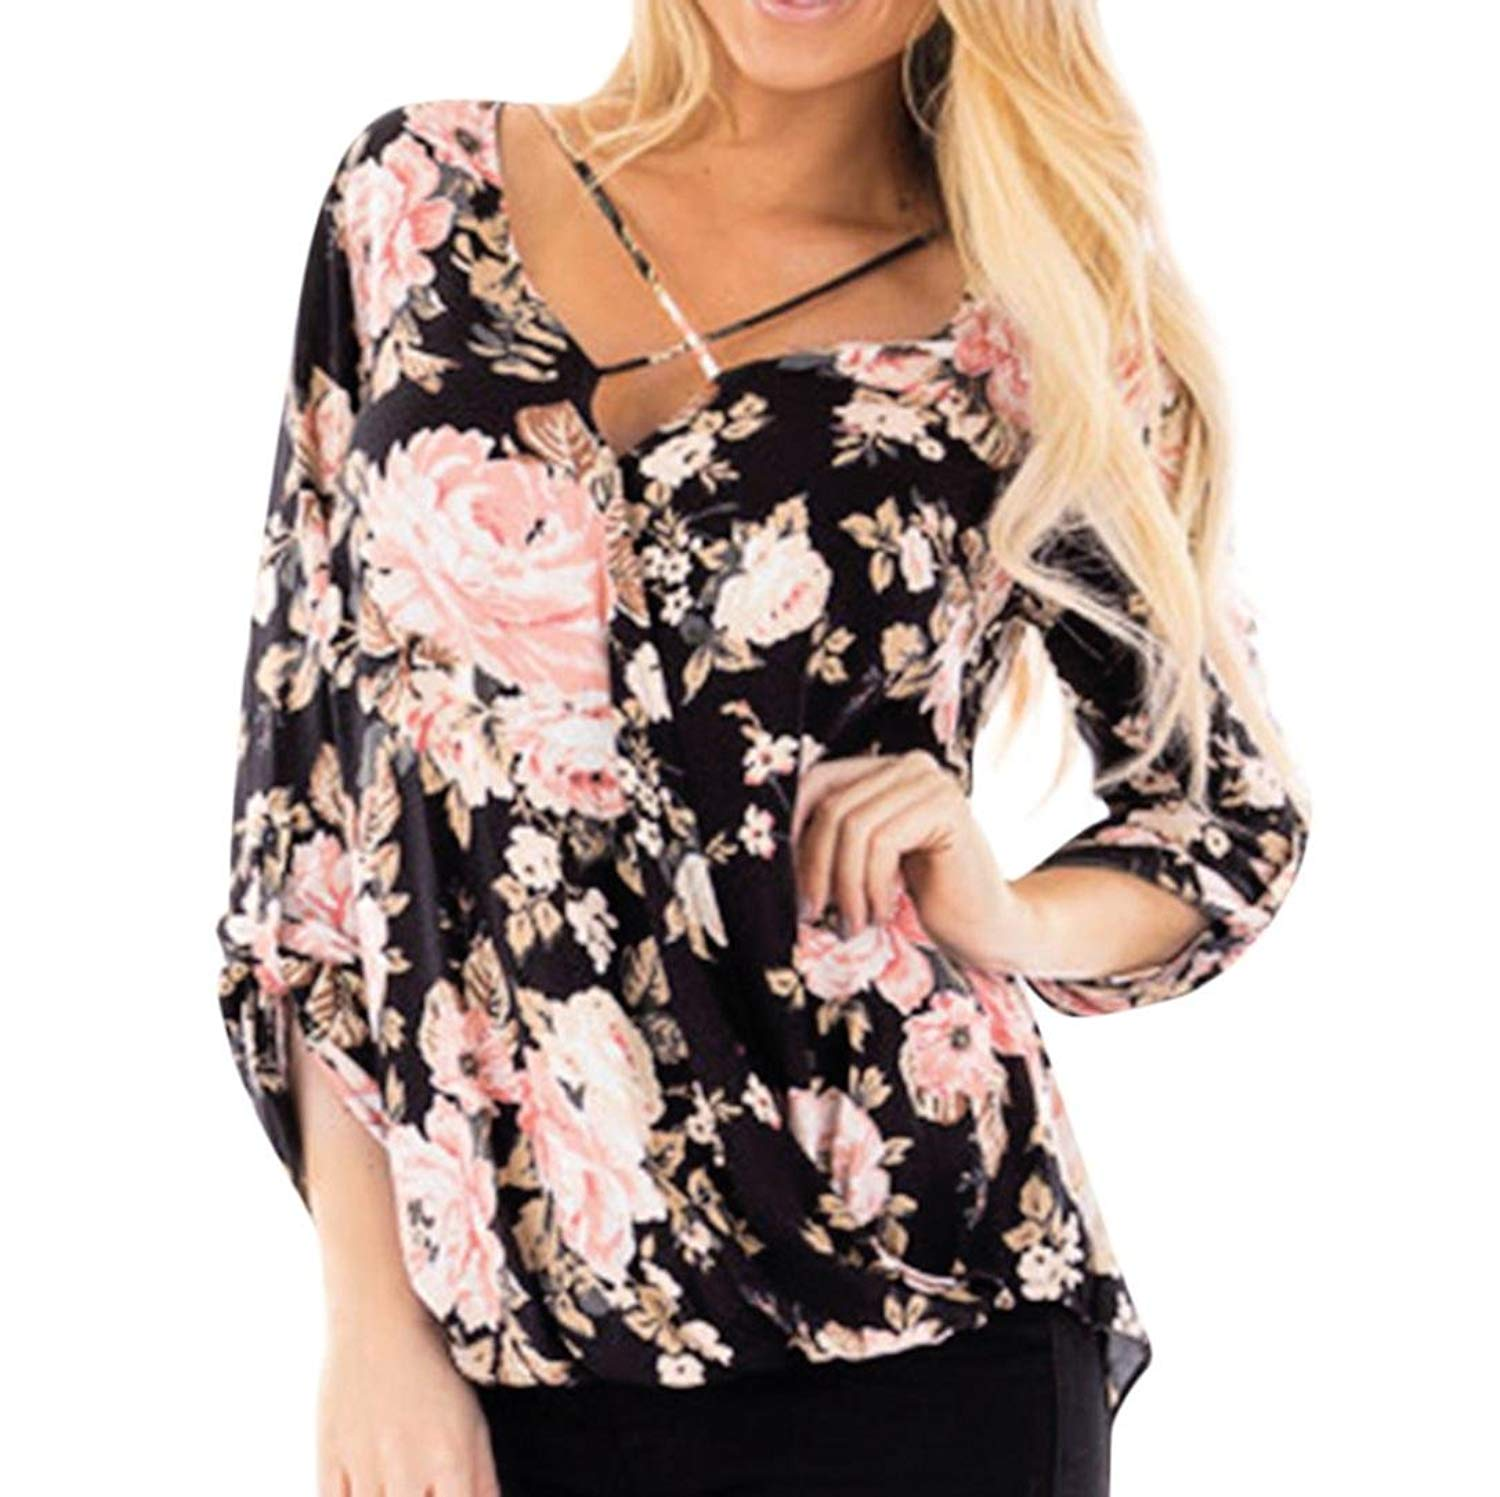 2018 New! Floral Long Sleeve Tops,Women Fasjhion Printed Criss Cross V Neck Blouse Bandage Irregular Hem T-Shirts Plus Size